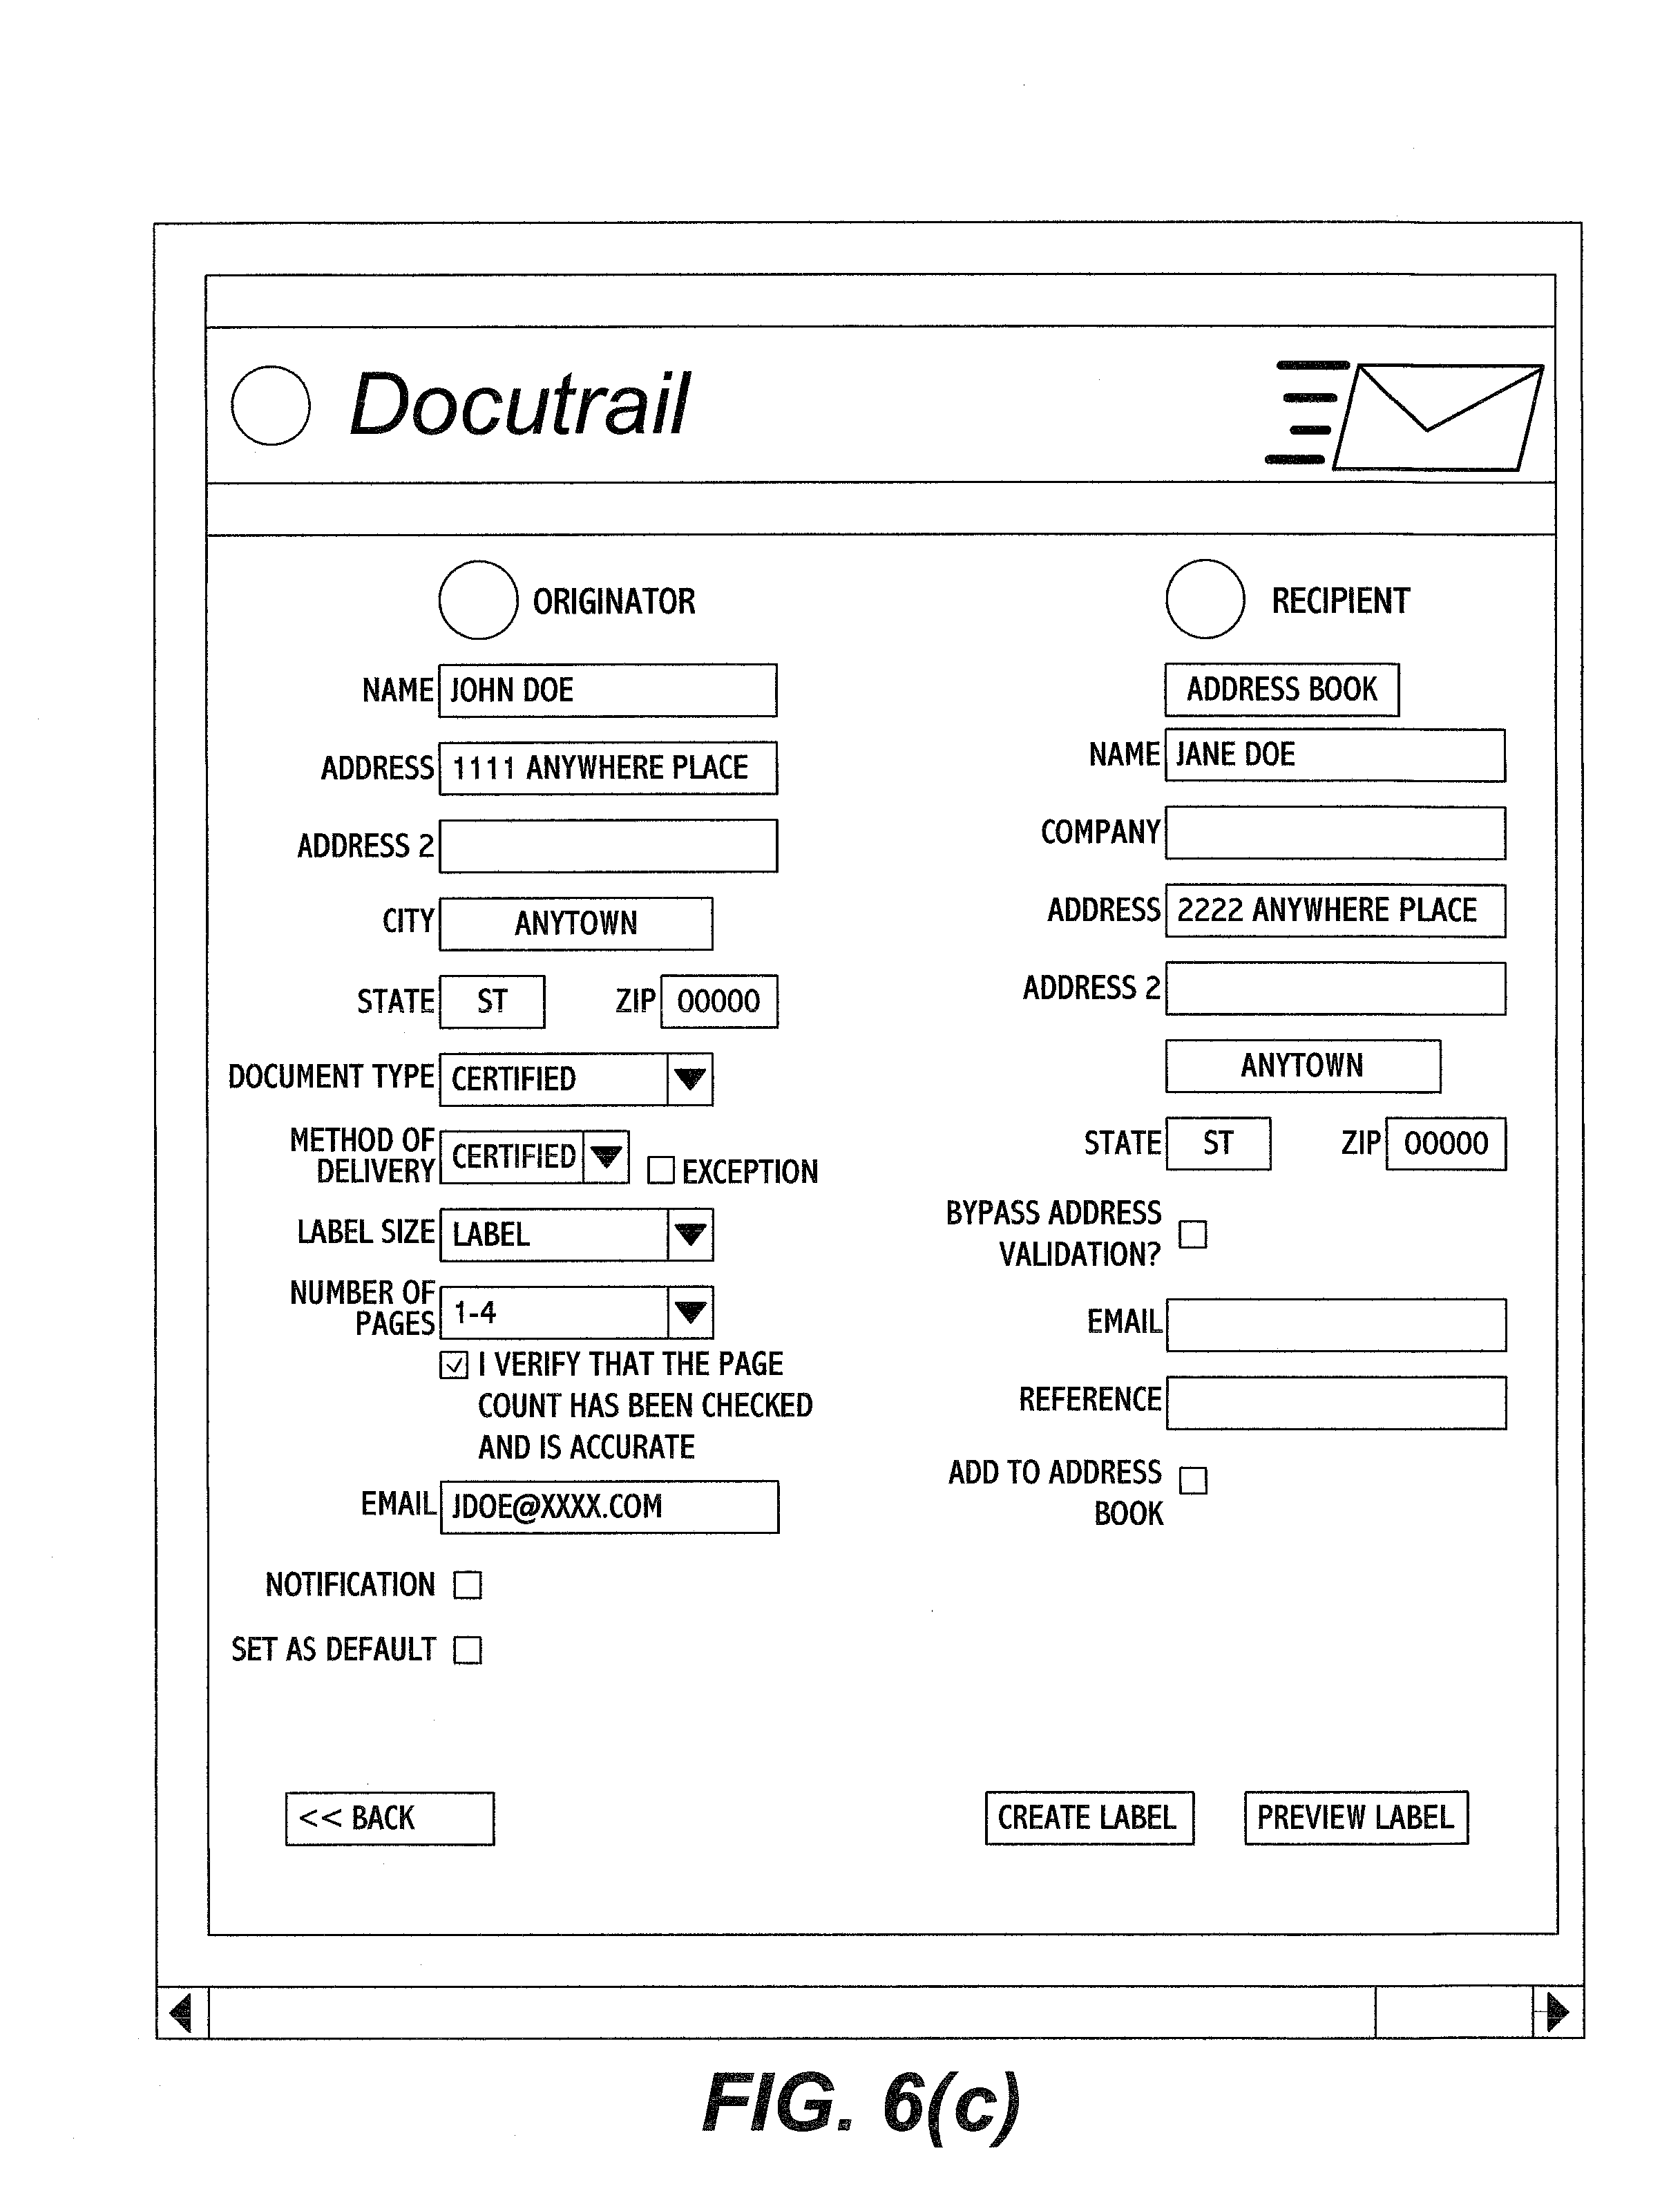 Free Invoice Template Uk Word Pdf Patent Us  Outbound Document System And Method  Google  Sample Invoices Free Word with Jcpenney Return Policy Without Receipt Word Patent Drawing Best Invoicing Software For Small Businesses Excel